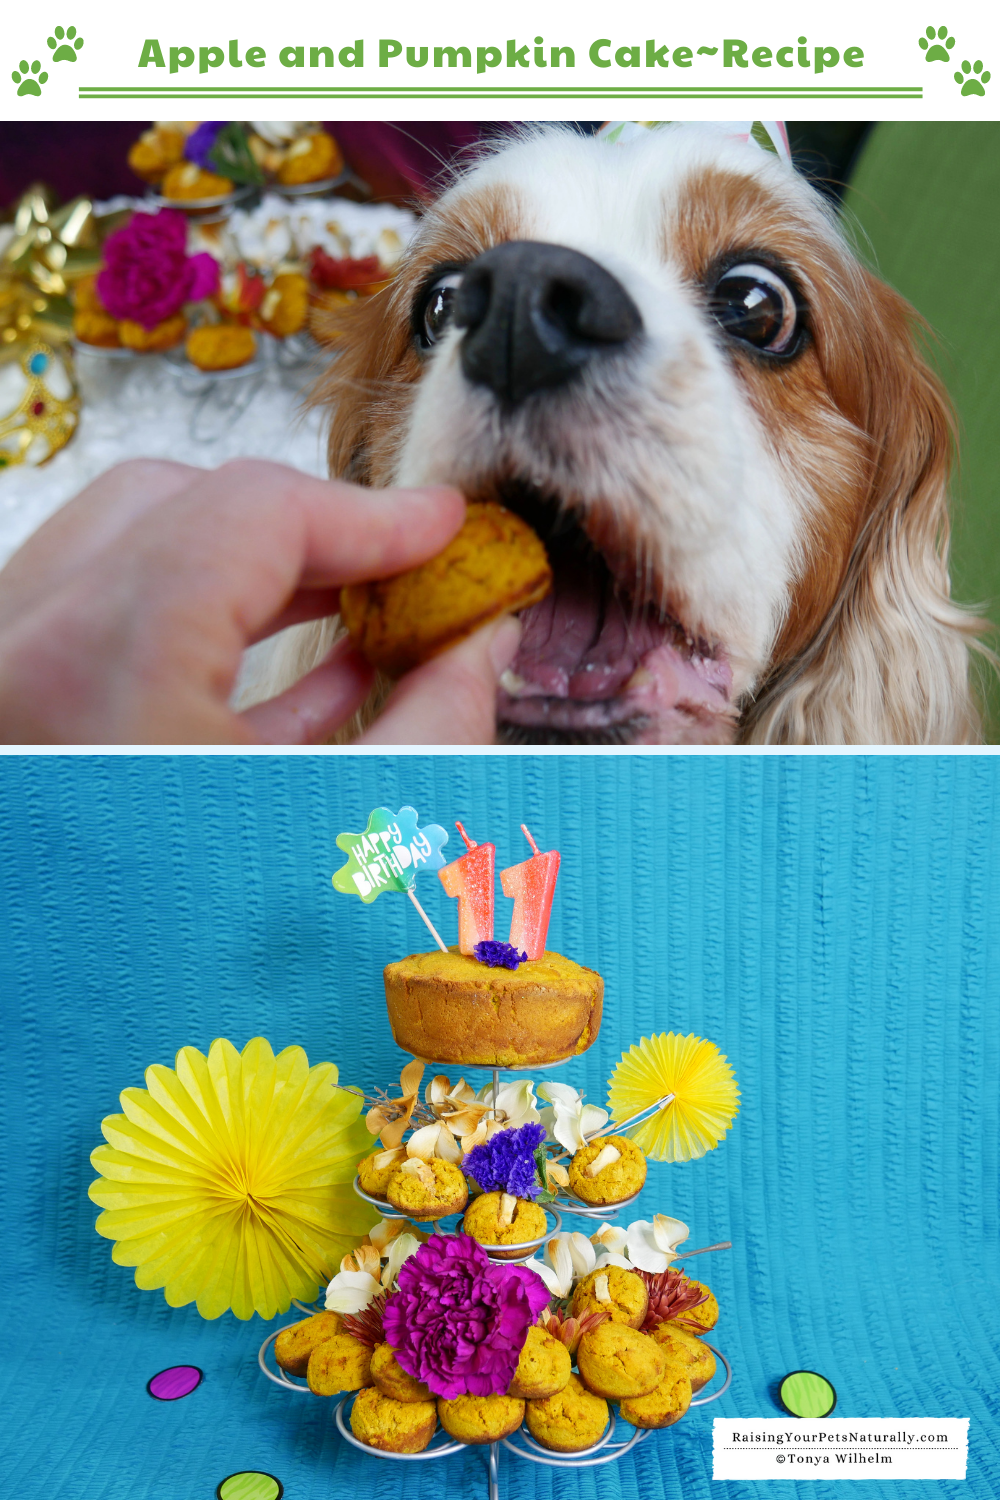 Healthy Dog Birthday Cake Recipe with Apples and Pumpkin   How to Make a Dog Cake (Early access for our Patreon community)